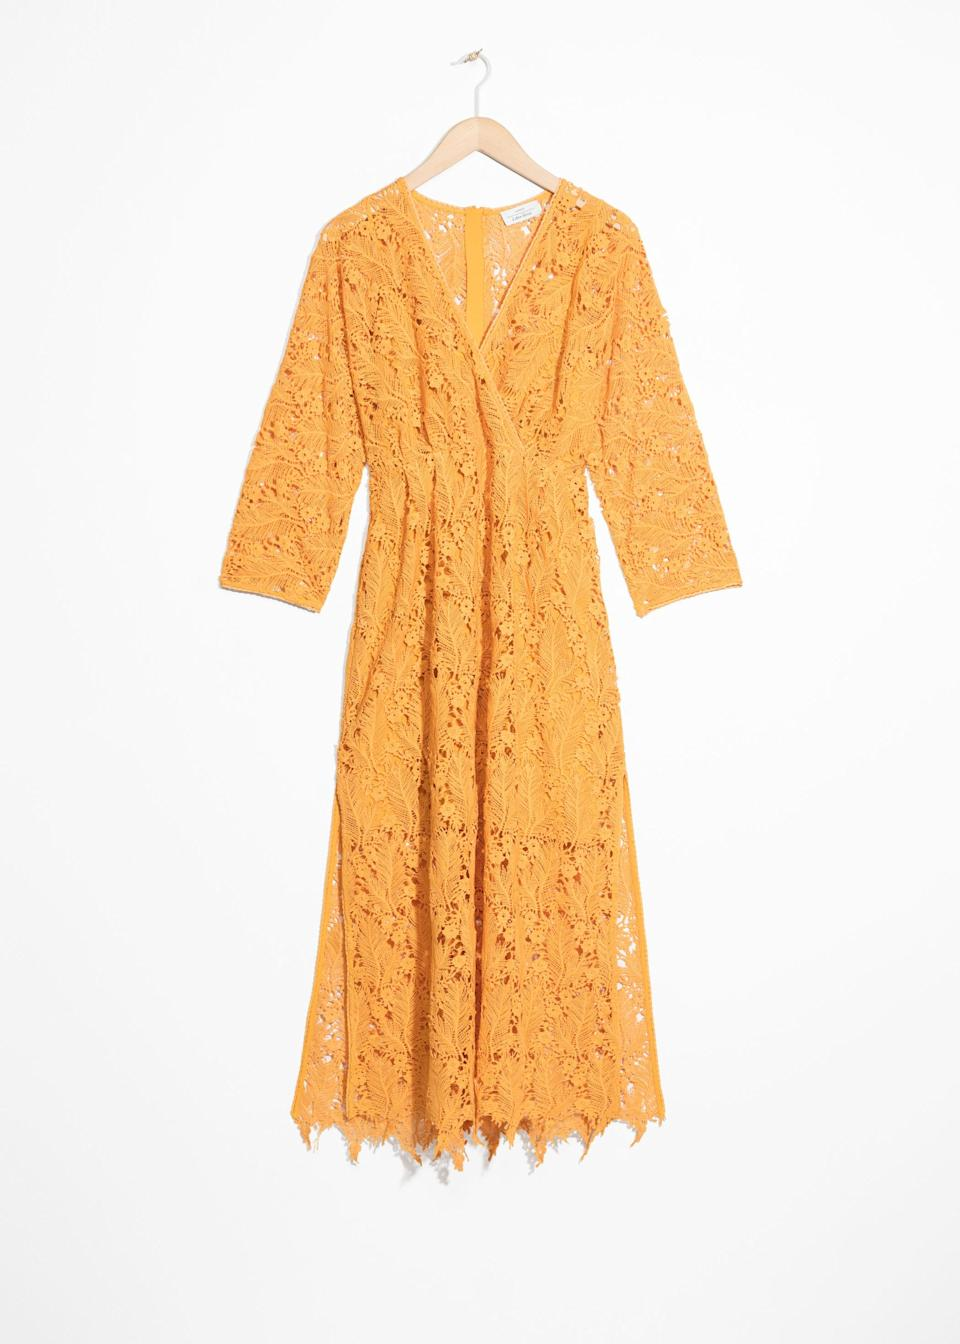 """<p>May rings in the start of wedding season and this lacy dress by Scandi favourite & Other Stories will take you through the many nuptials you'll be attending. <em><a rel=""""nofollow noopener"""" href=""""https://www.stories.com/en_gbp/clothing/dresses/midi-dresses/product.allover-lace-midi-dress-yellow.0644742001.html?utm_source=gcdL/ATRVoE&utm_medium=affiliate&utm_campaign=12499743562&utm_content=15&utm_term=461257&ranMID=41994&ranEAID=gcdL/ATRVoE&ranSiteID=gcdL_ATRVoE-edKrdgBIMc1BUS8ysvc_8g"""" target=""""_blank"""" data-ylk=""""slk:Buy here."""" class=""""link rapid-noclick-resp"""">Buy here.</a></em> </p>"""